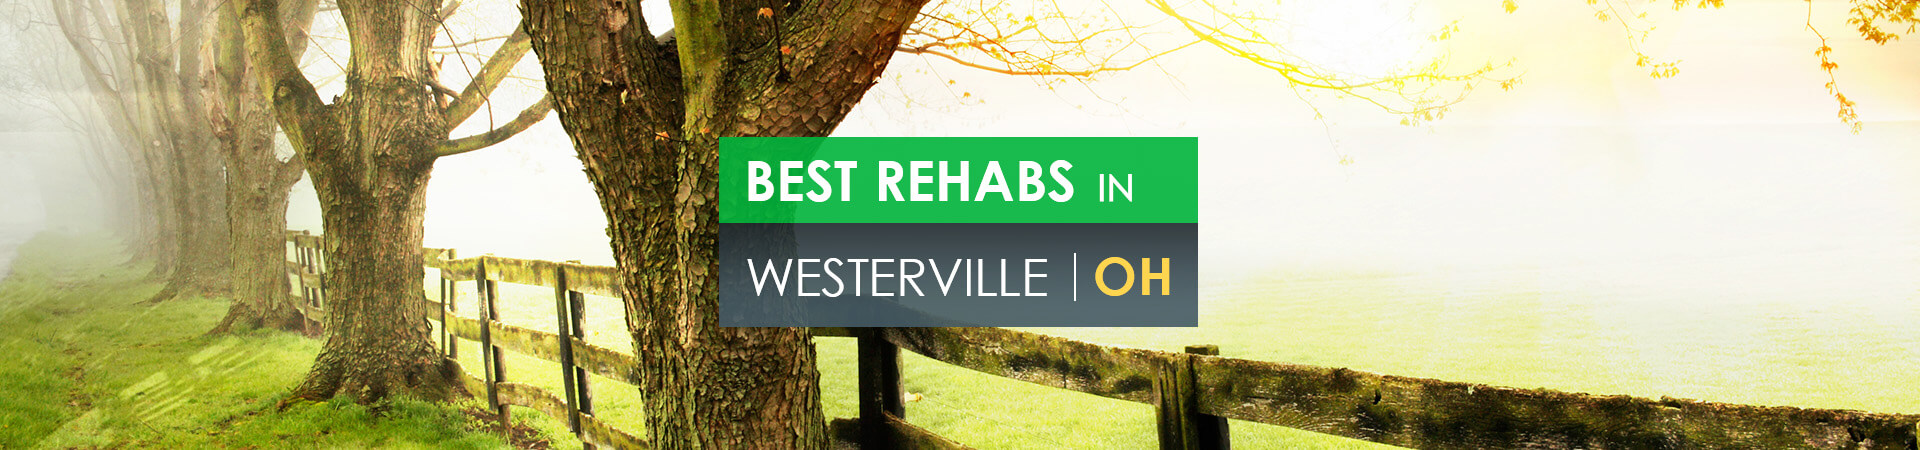 Best rehabs in Westerville, OH